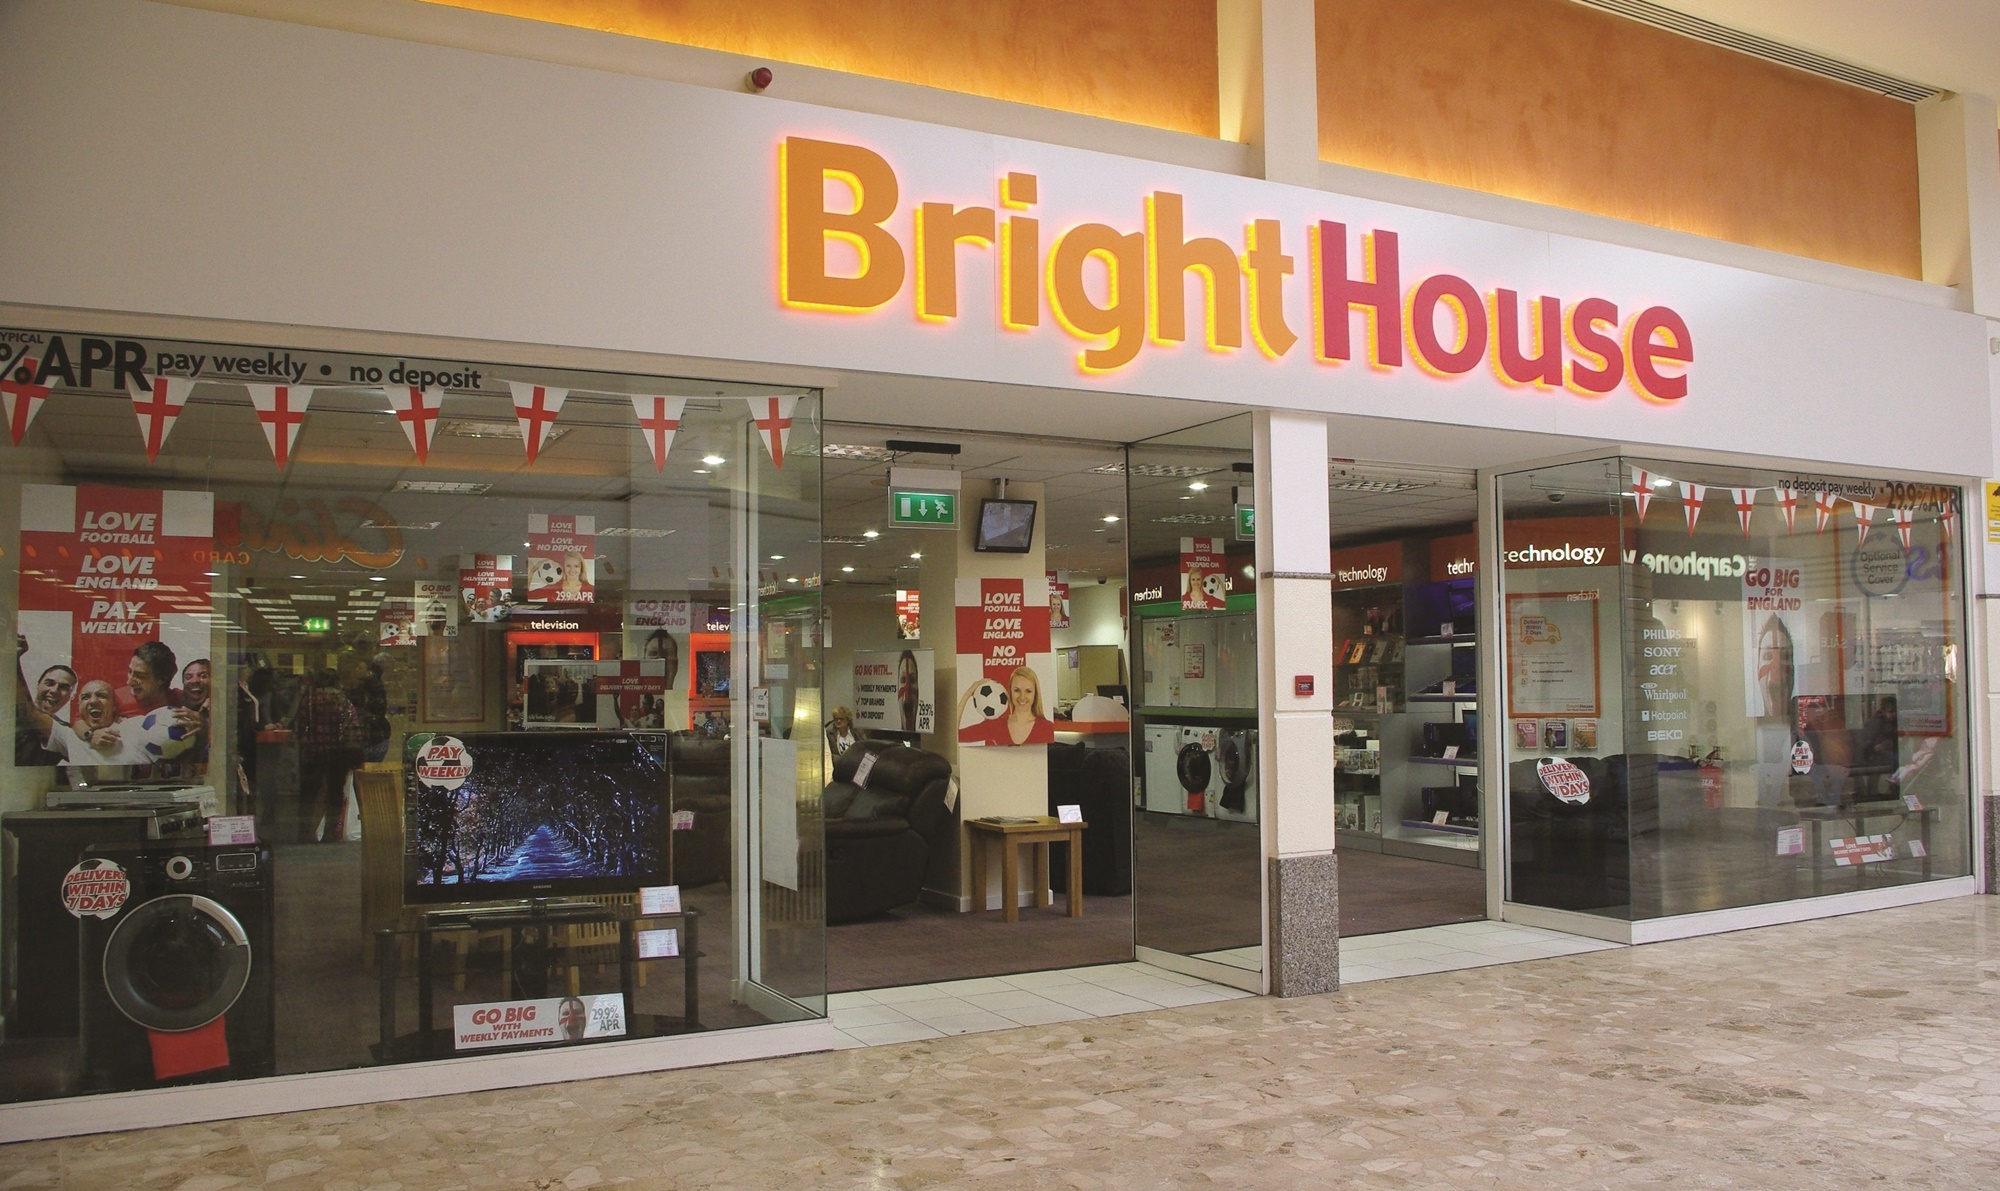 3030574_BrightHouse-St-George-store-front.jpg